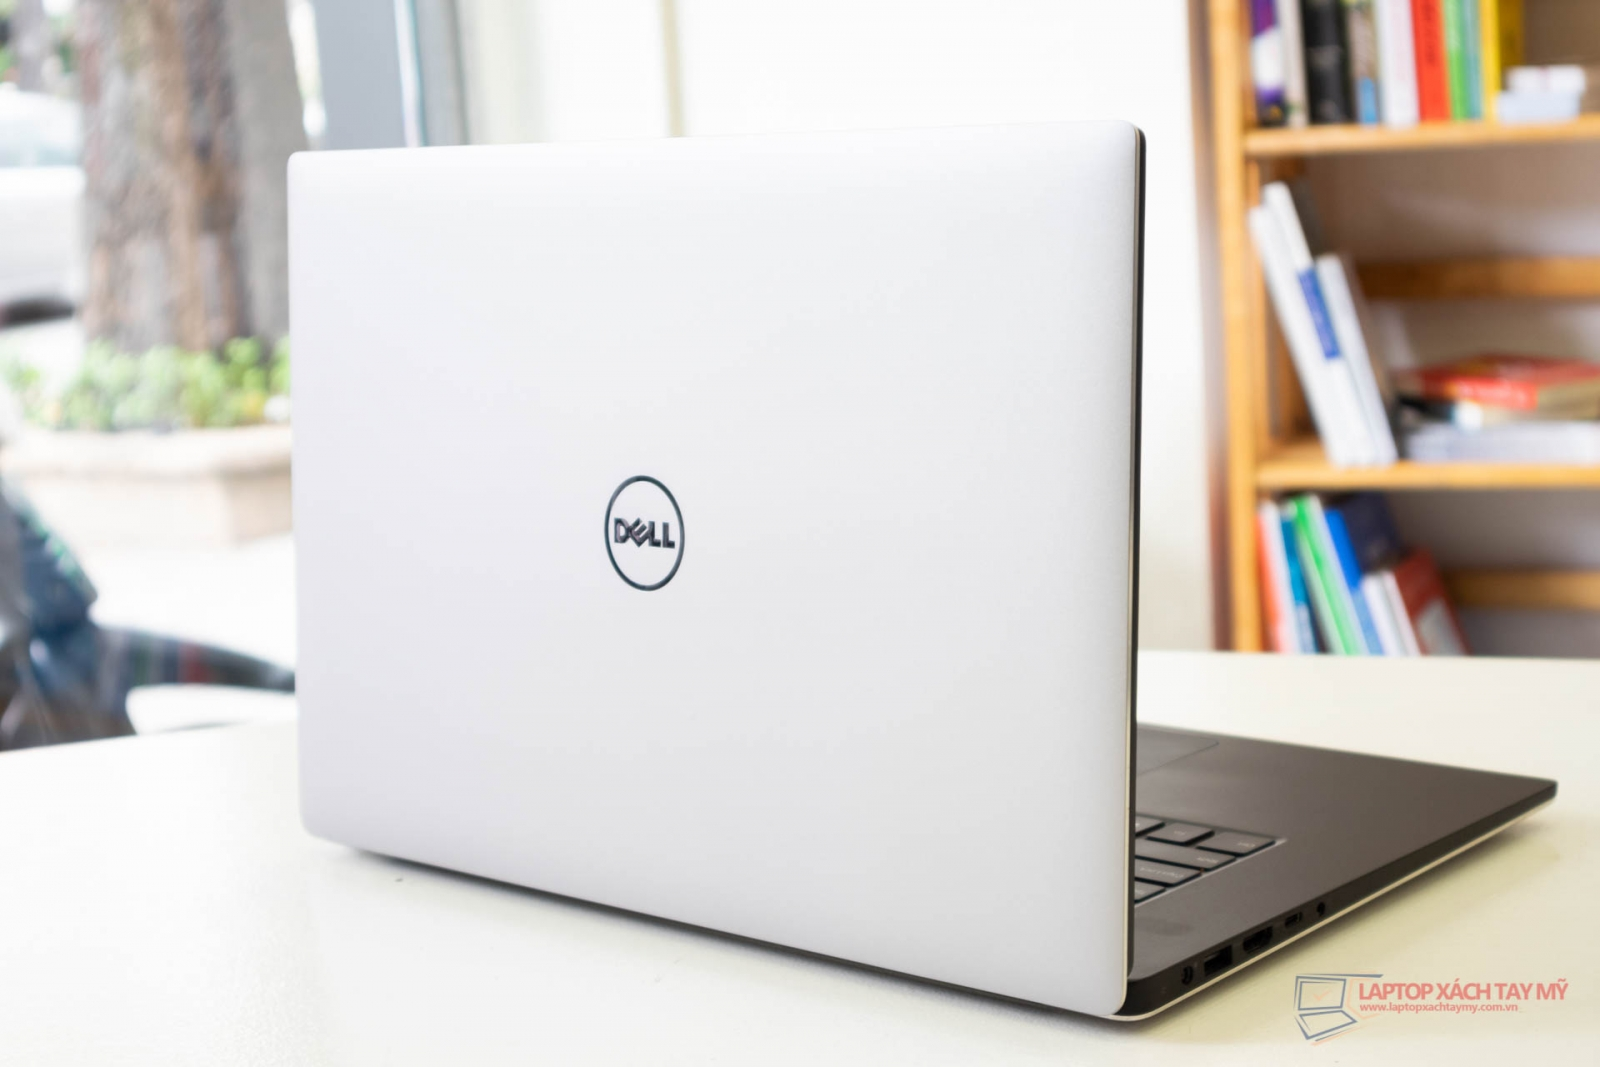 Dell Precision 5510 may tram do hoa cu workstation gia re laptop cu do hoa